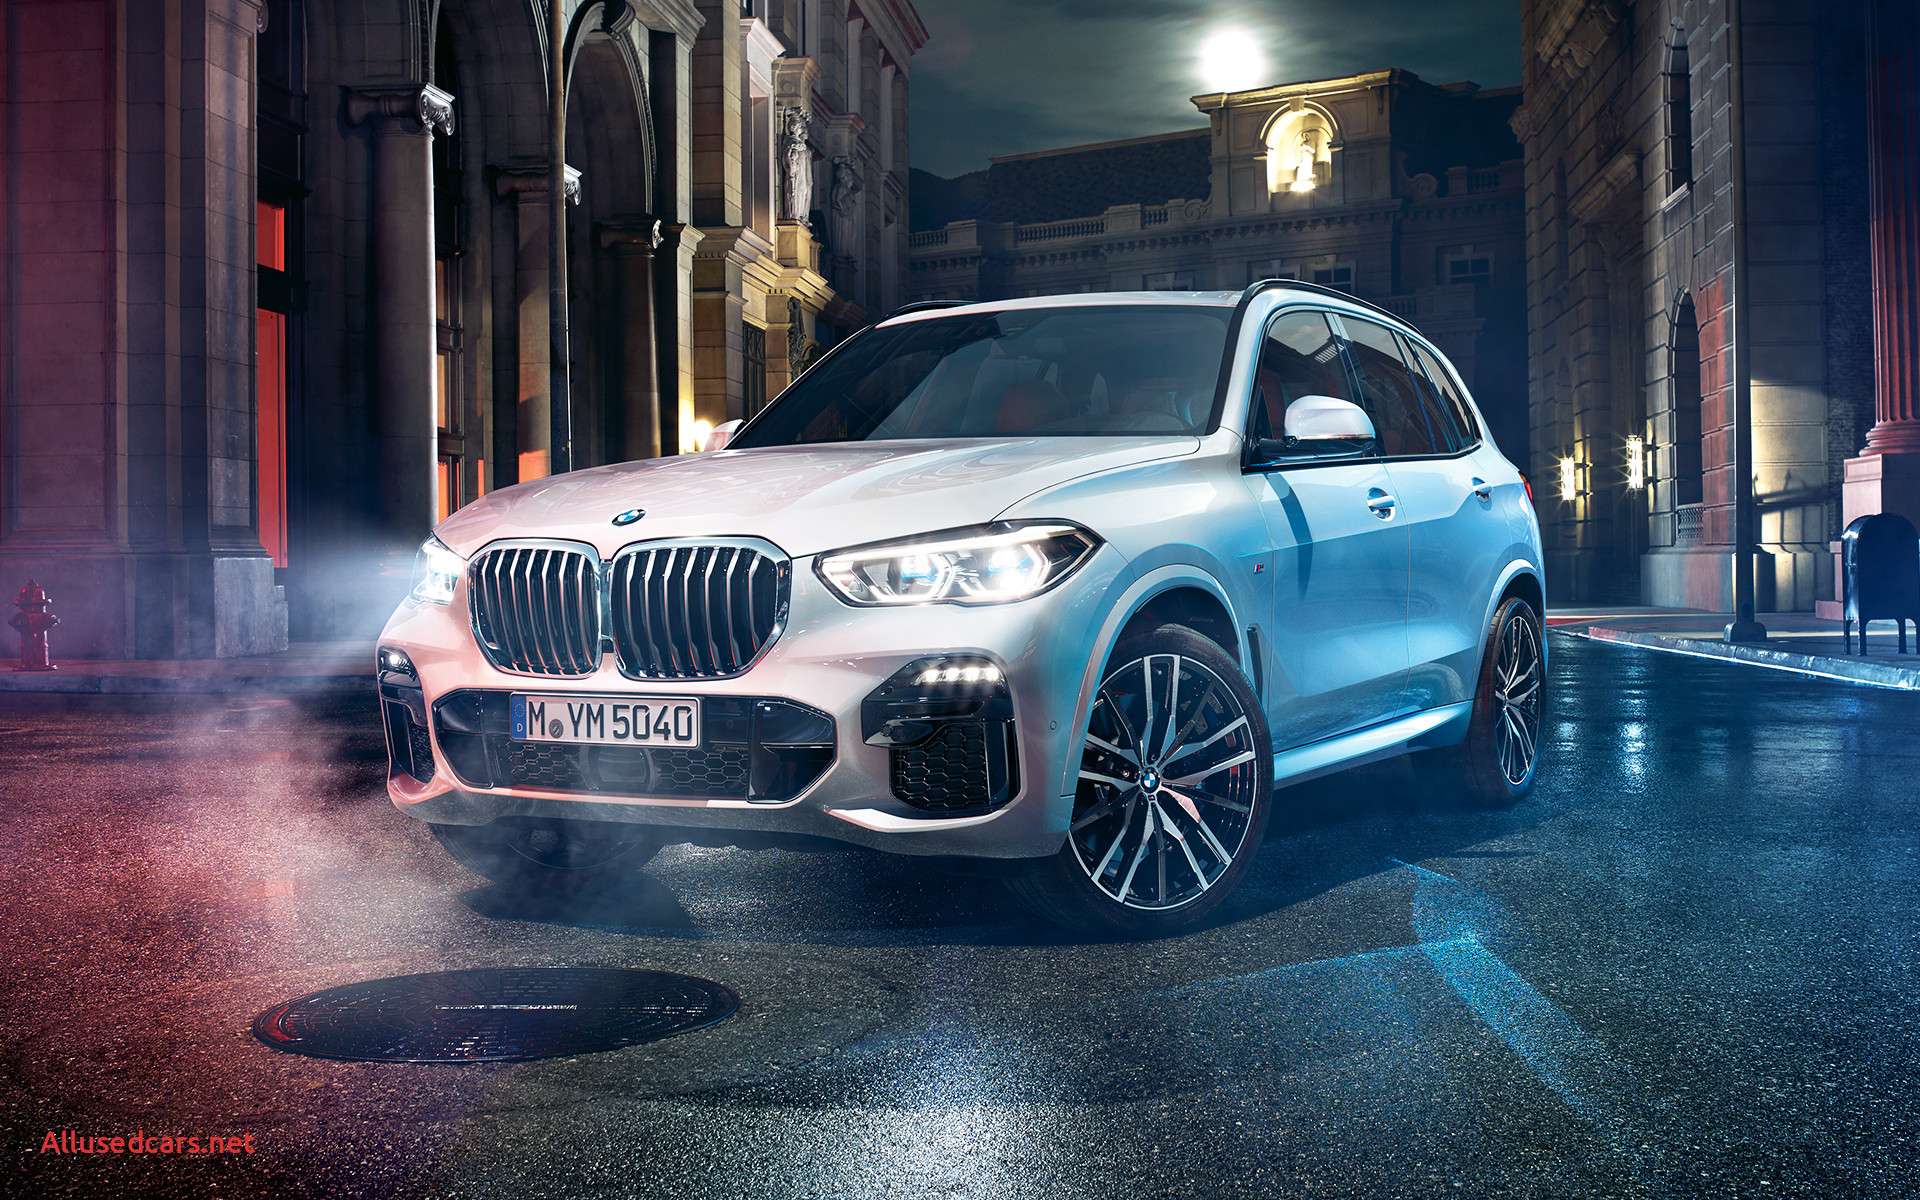 BMW G05 X5 wallpapers 12